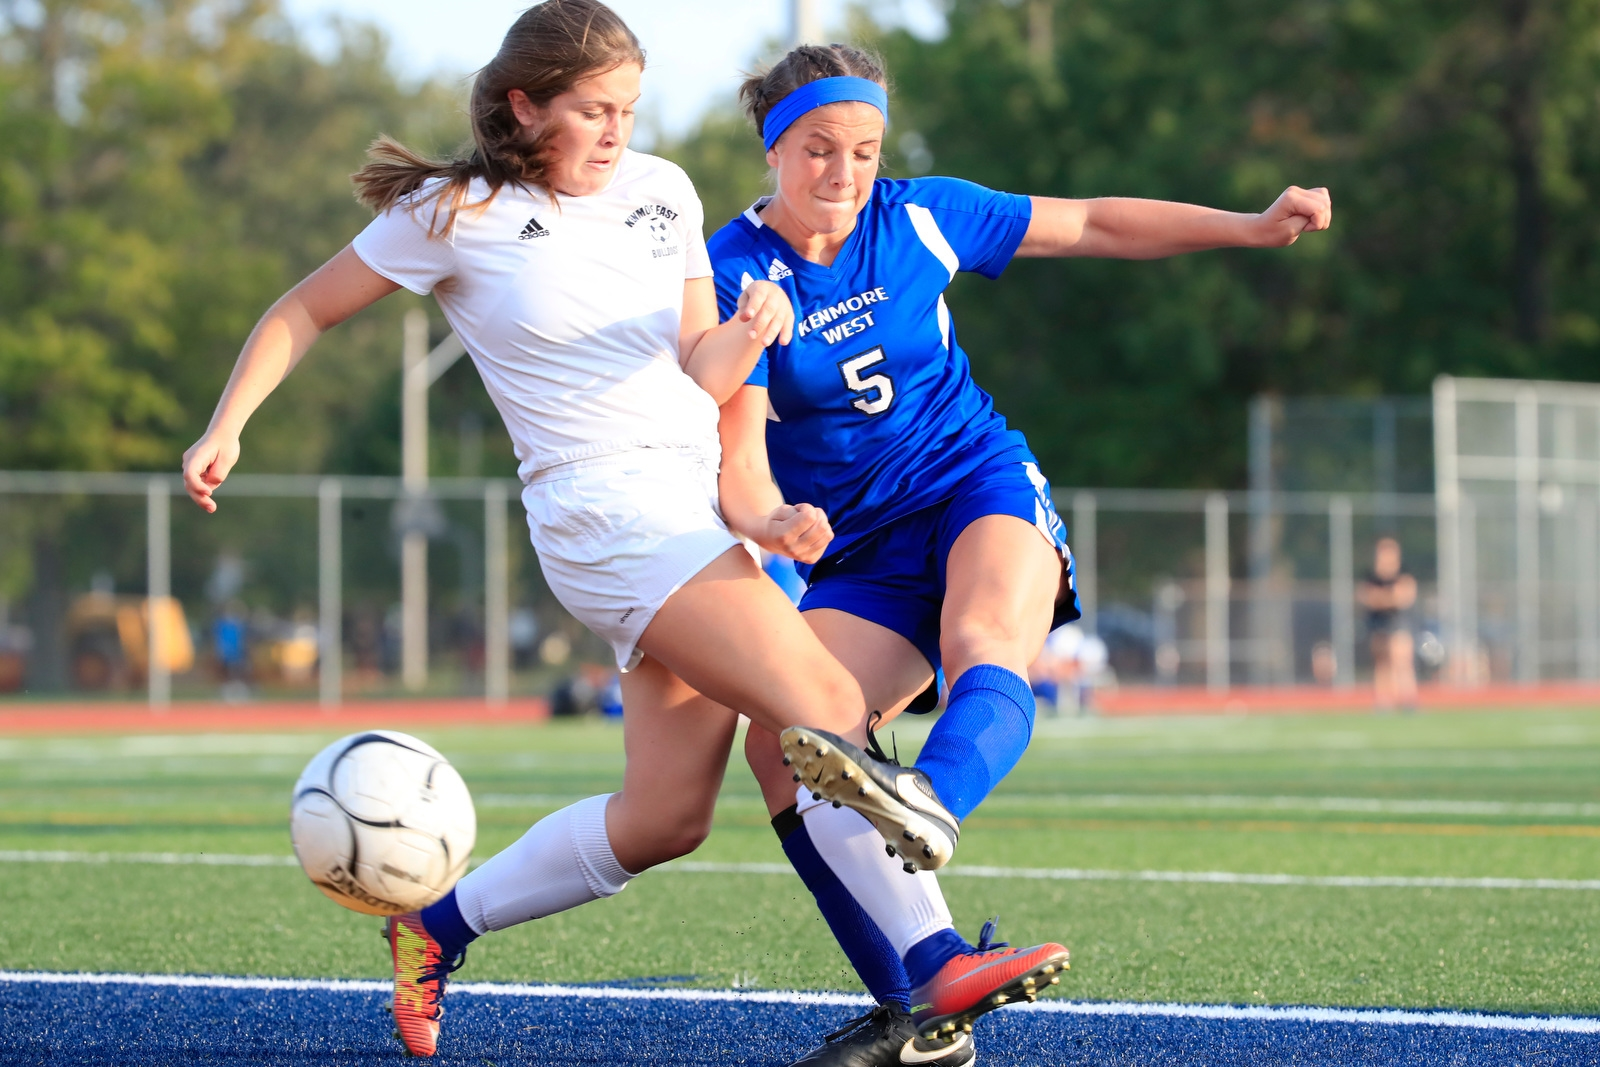 Kenmore Westu2019s Molly Tobin kicks a ball around Kenmore Eastu2019s Emily Dellapenta during first half action at Adams Field on Monday, Sept. 25, 2017.